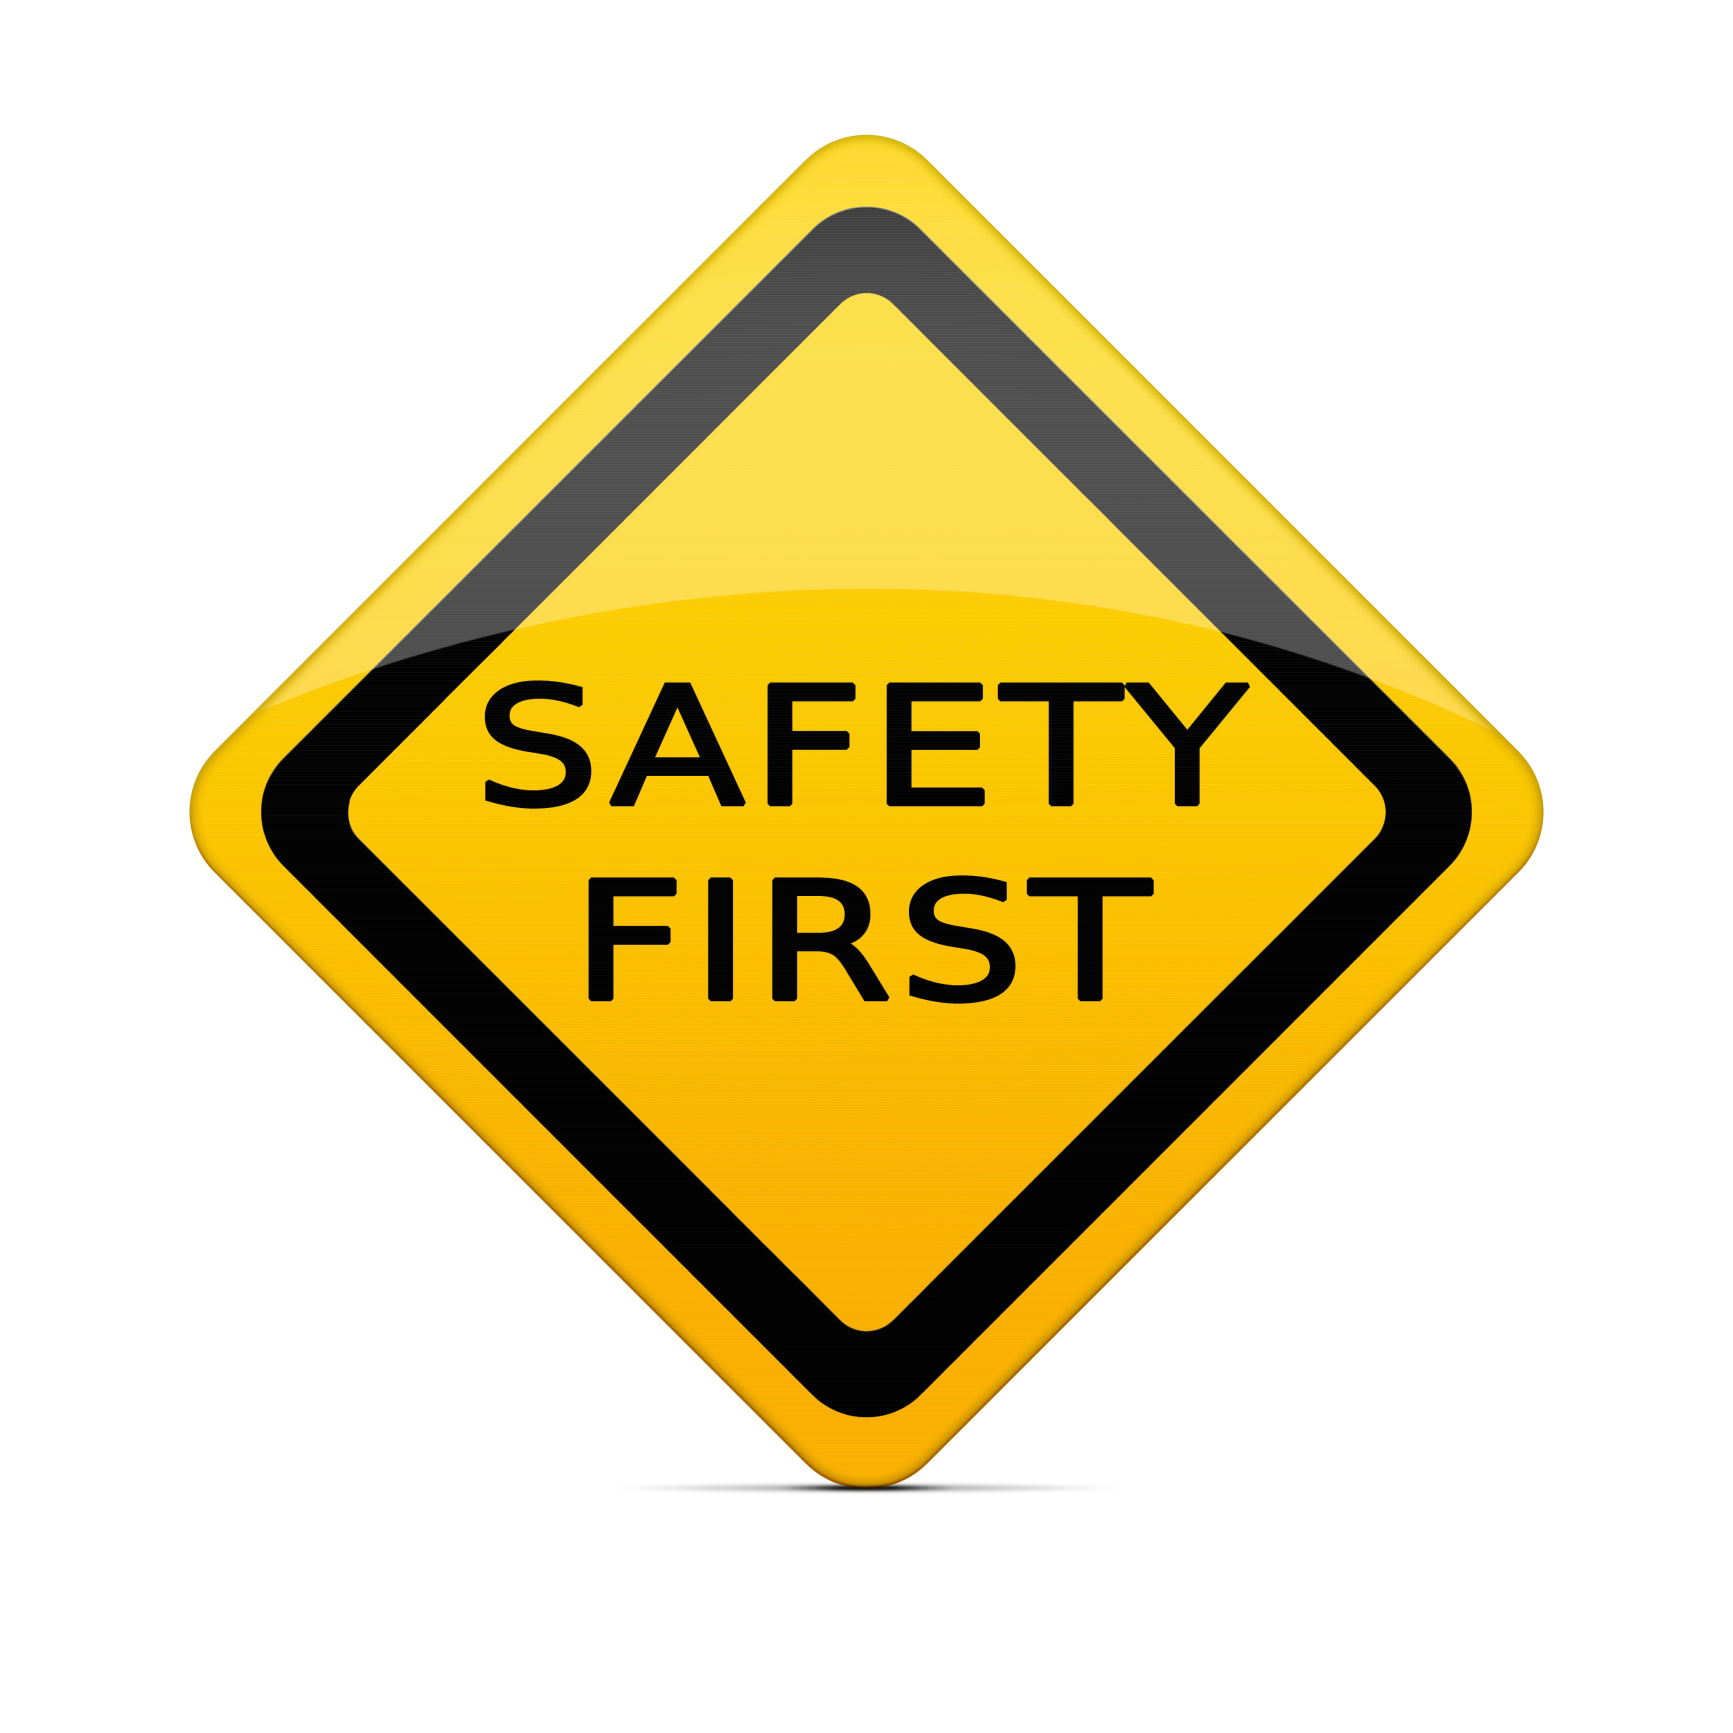 Safety First With Images Online Dating Me On A Map Online Safety